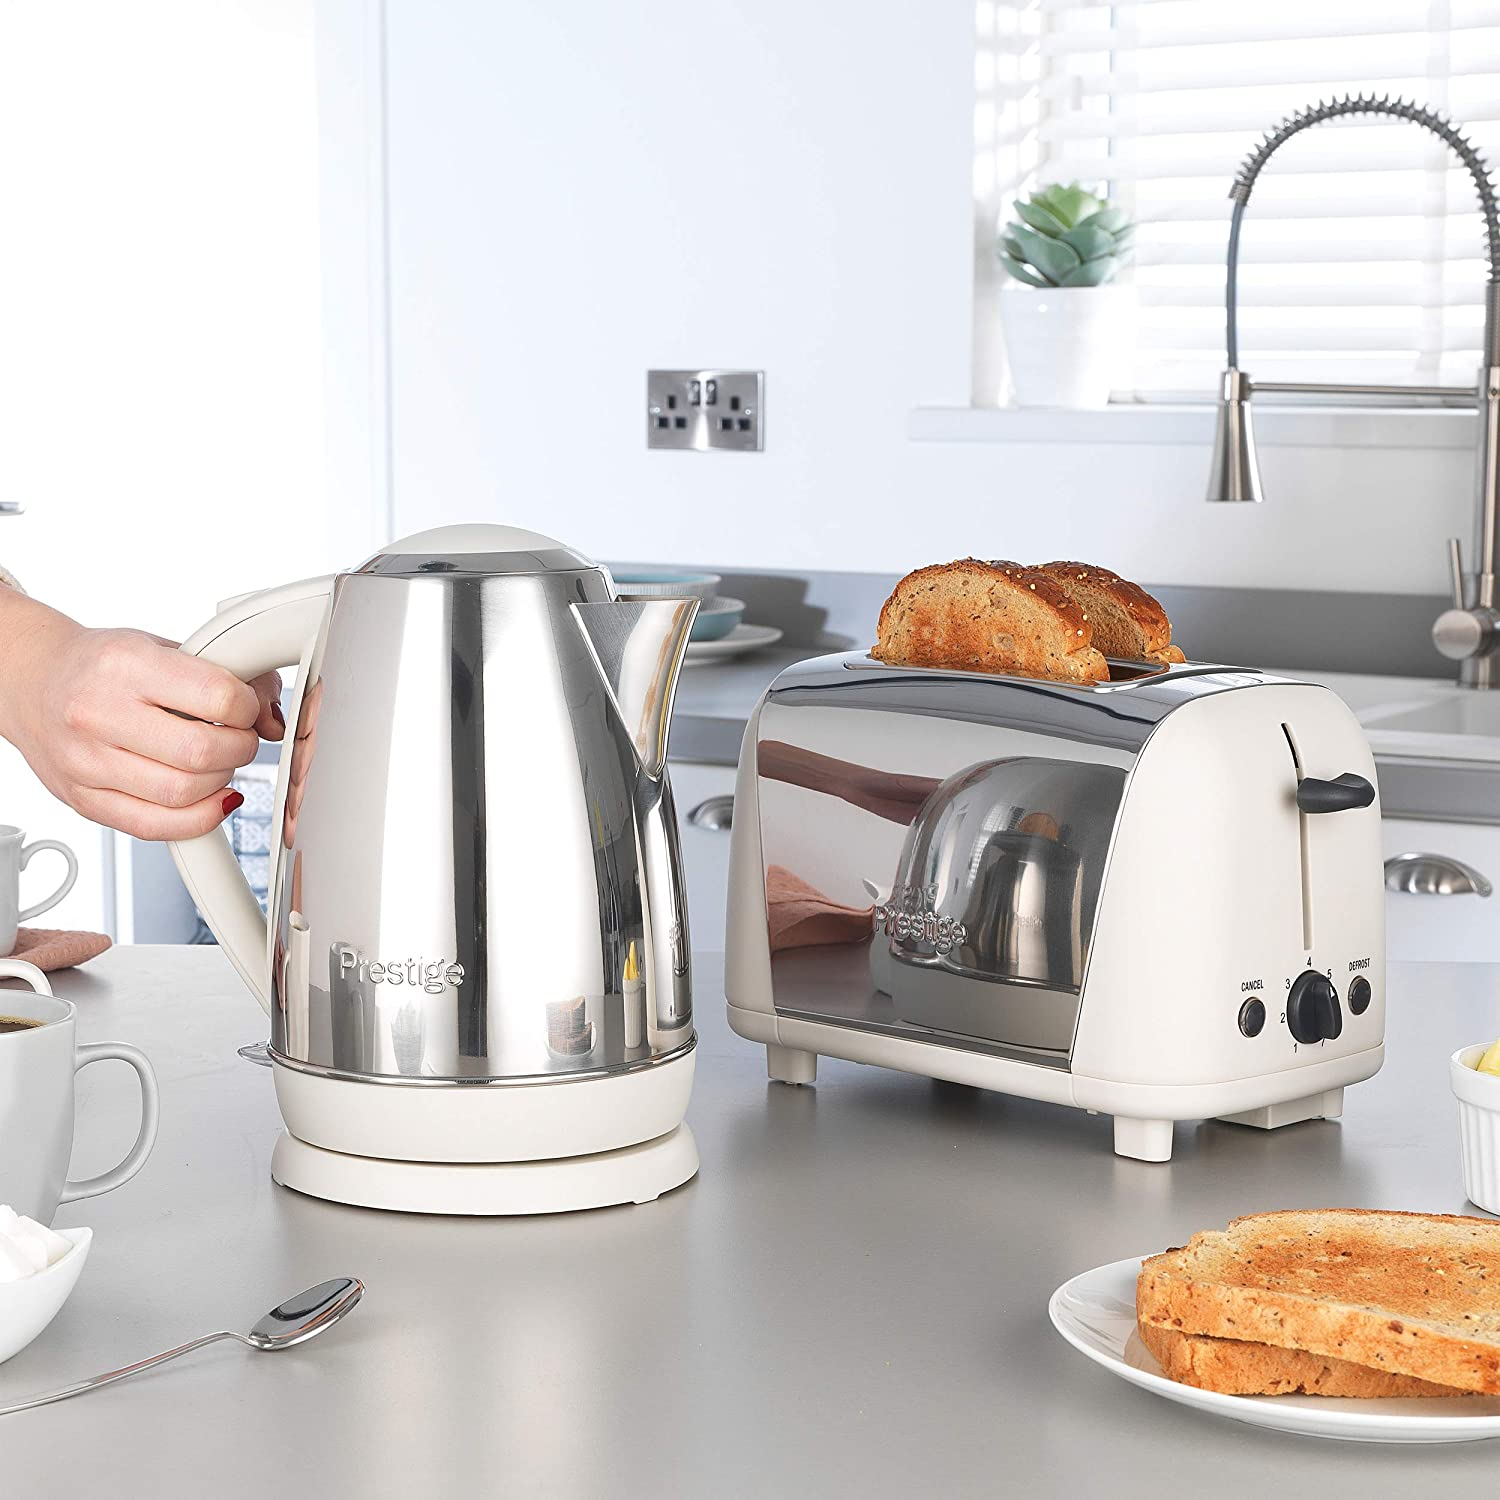 Prestige 53233 Cordless 1.7L Kettle and 2-Slice Toaster, Stainless Steel and Almond Almond